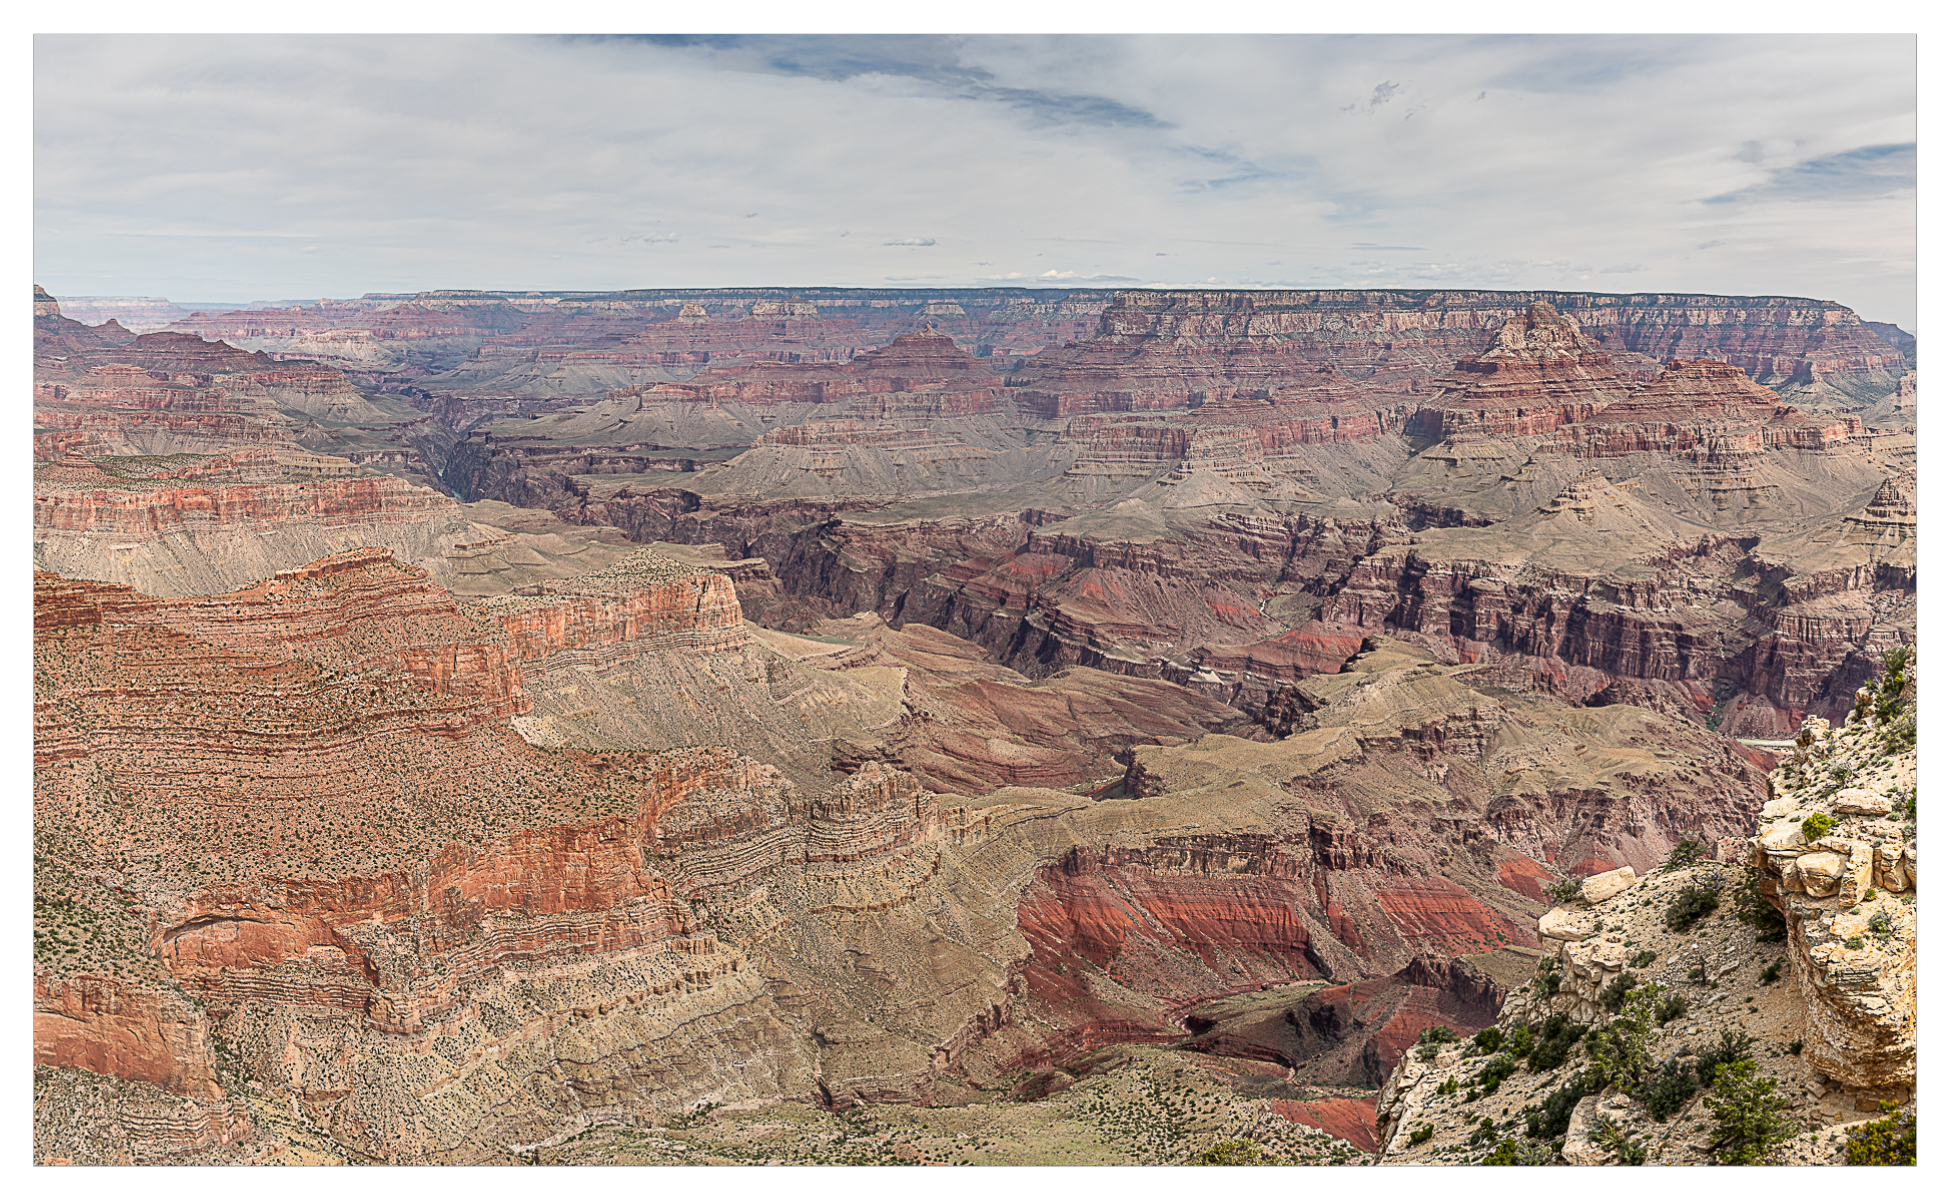 And on to 36 Degrees North – The Grand Canyon!